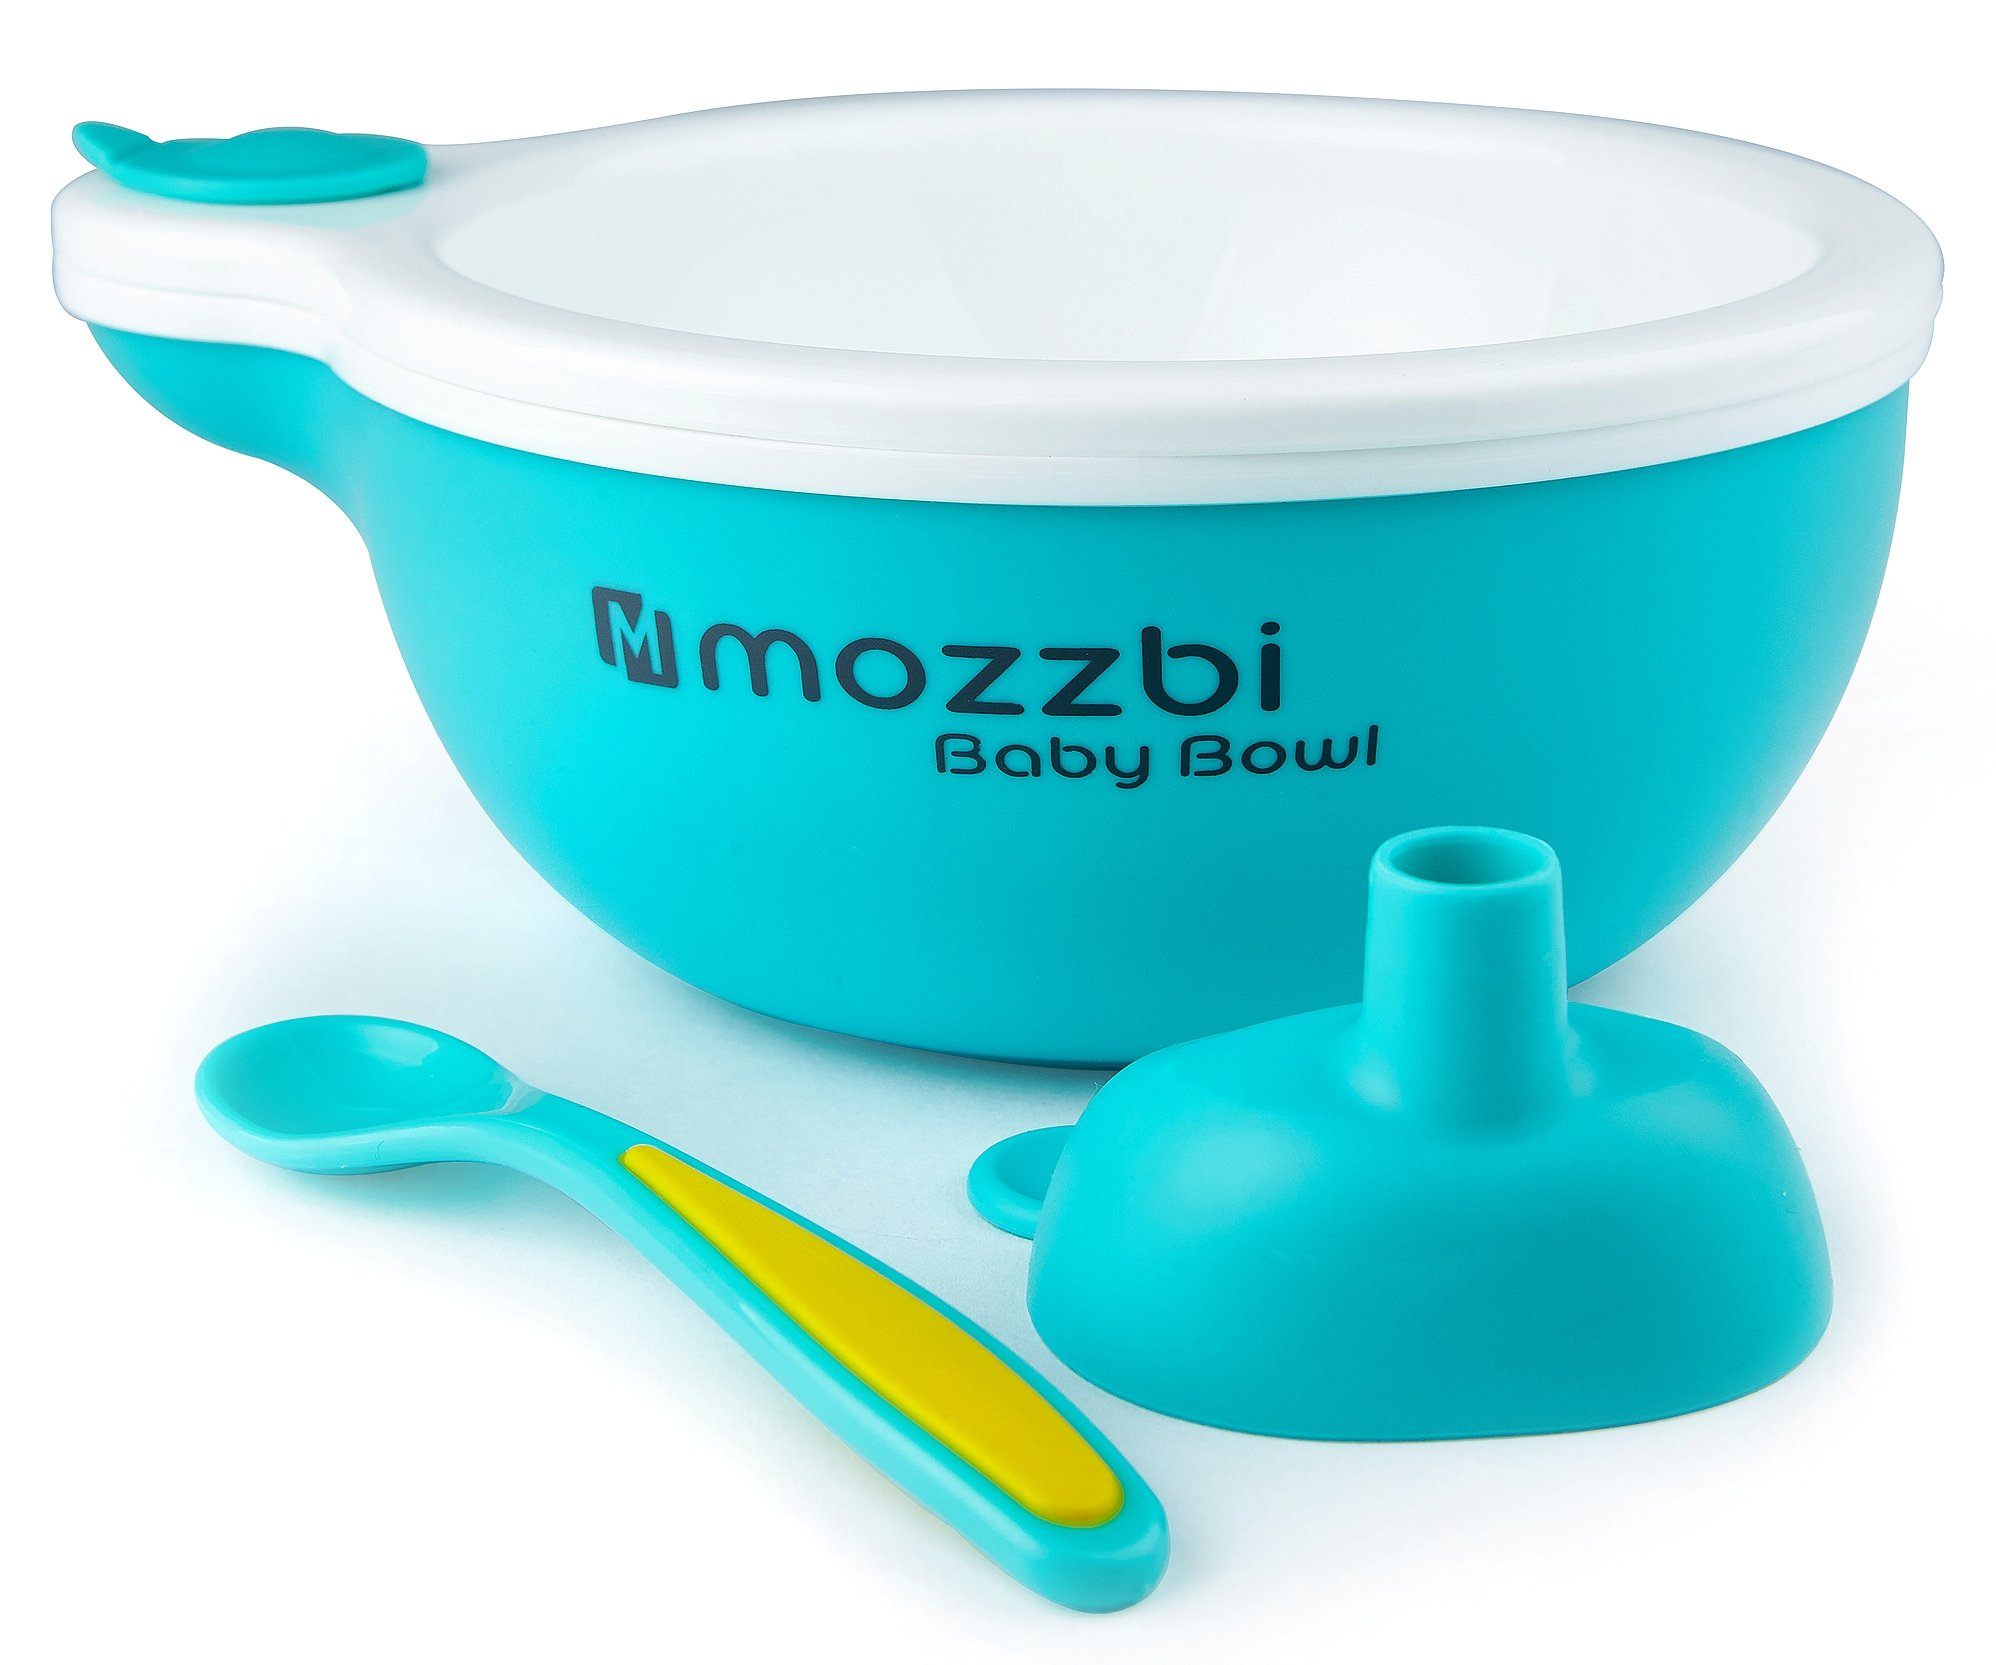 Feeding Bowls, Baby Spoon + Pour in Hot water Funnel to Keep Food Warm by Mozzbi